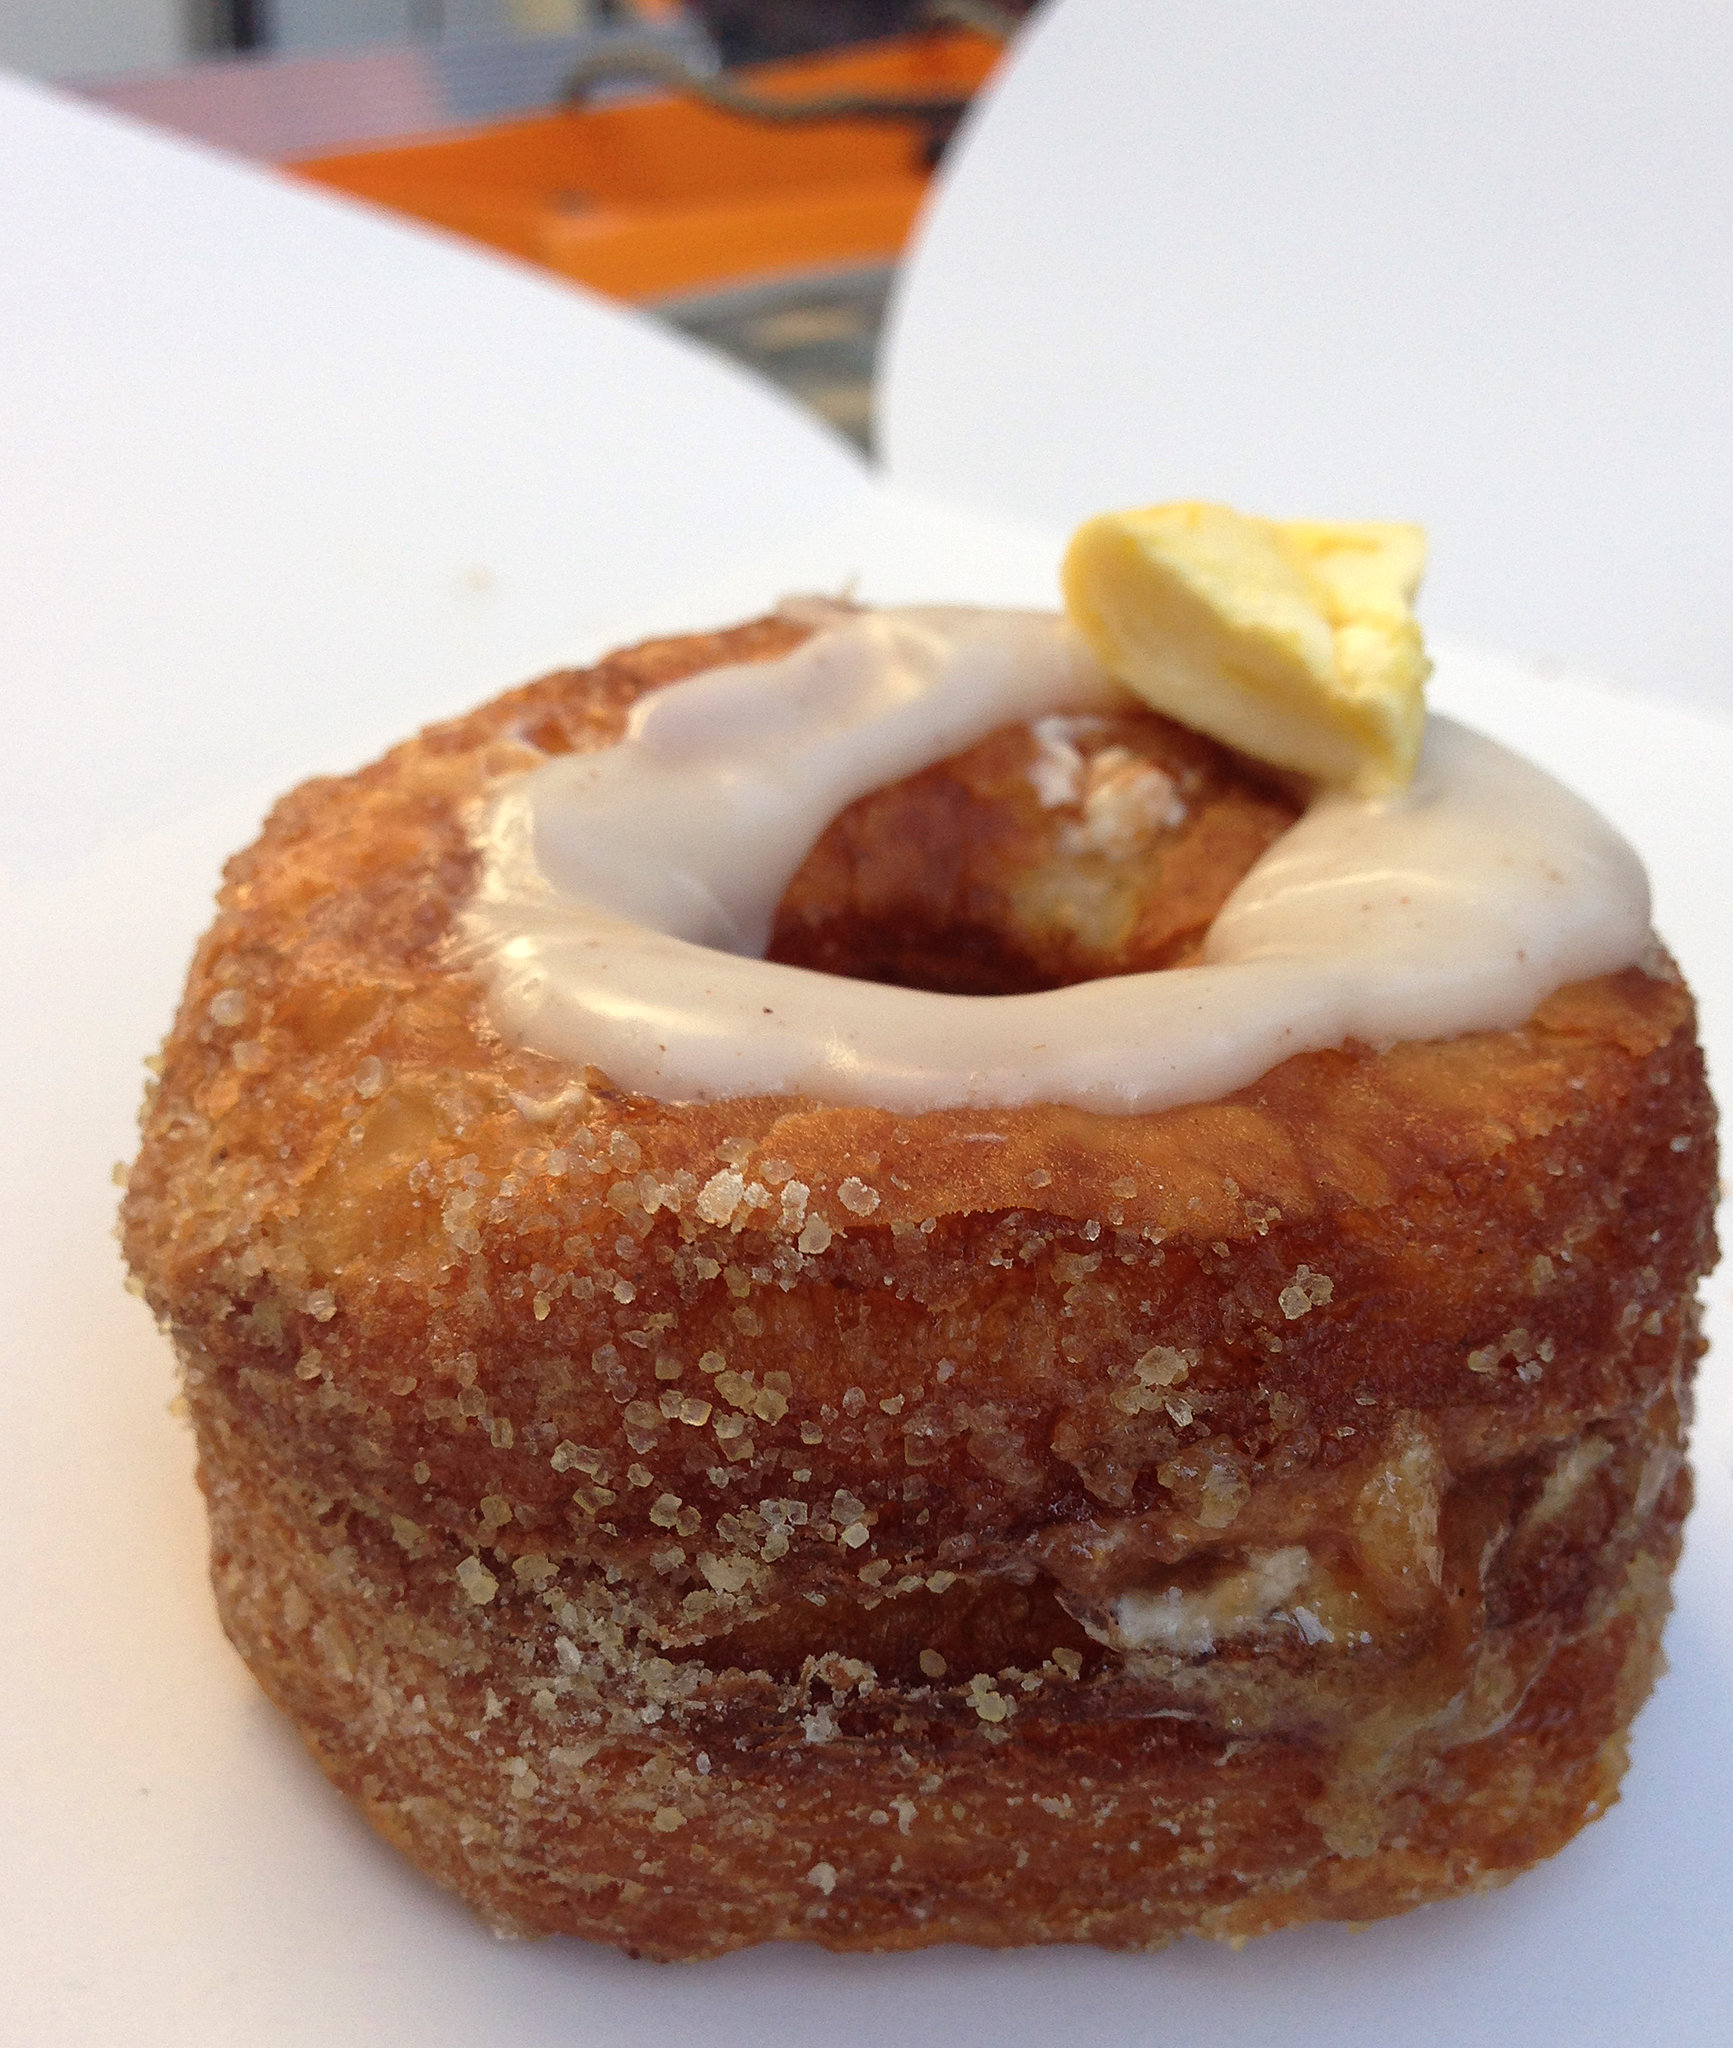 October Cronut